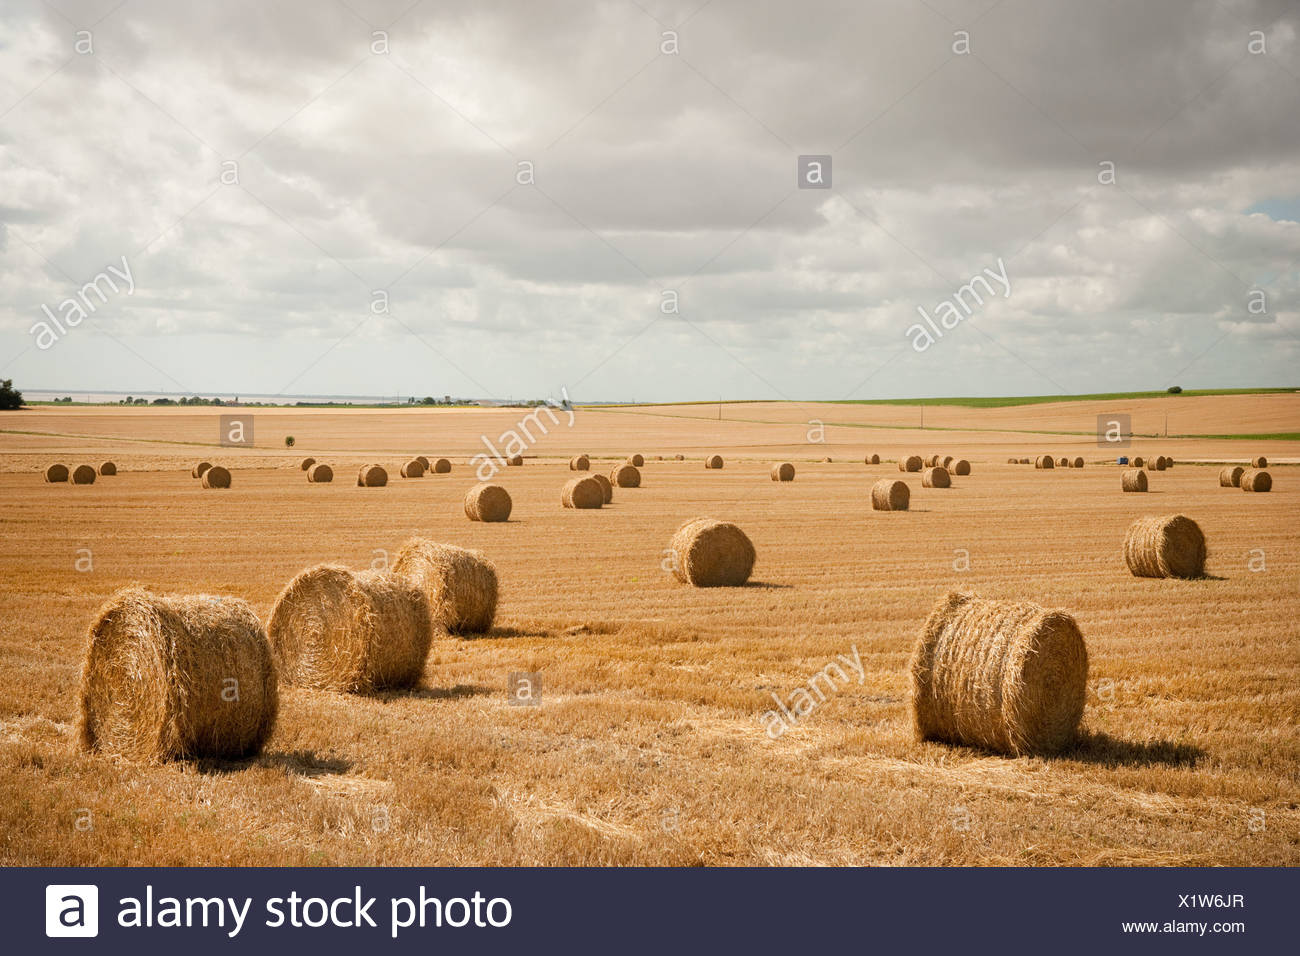 Round hay bales in field - Stock Image